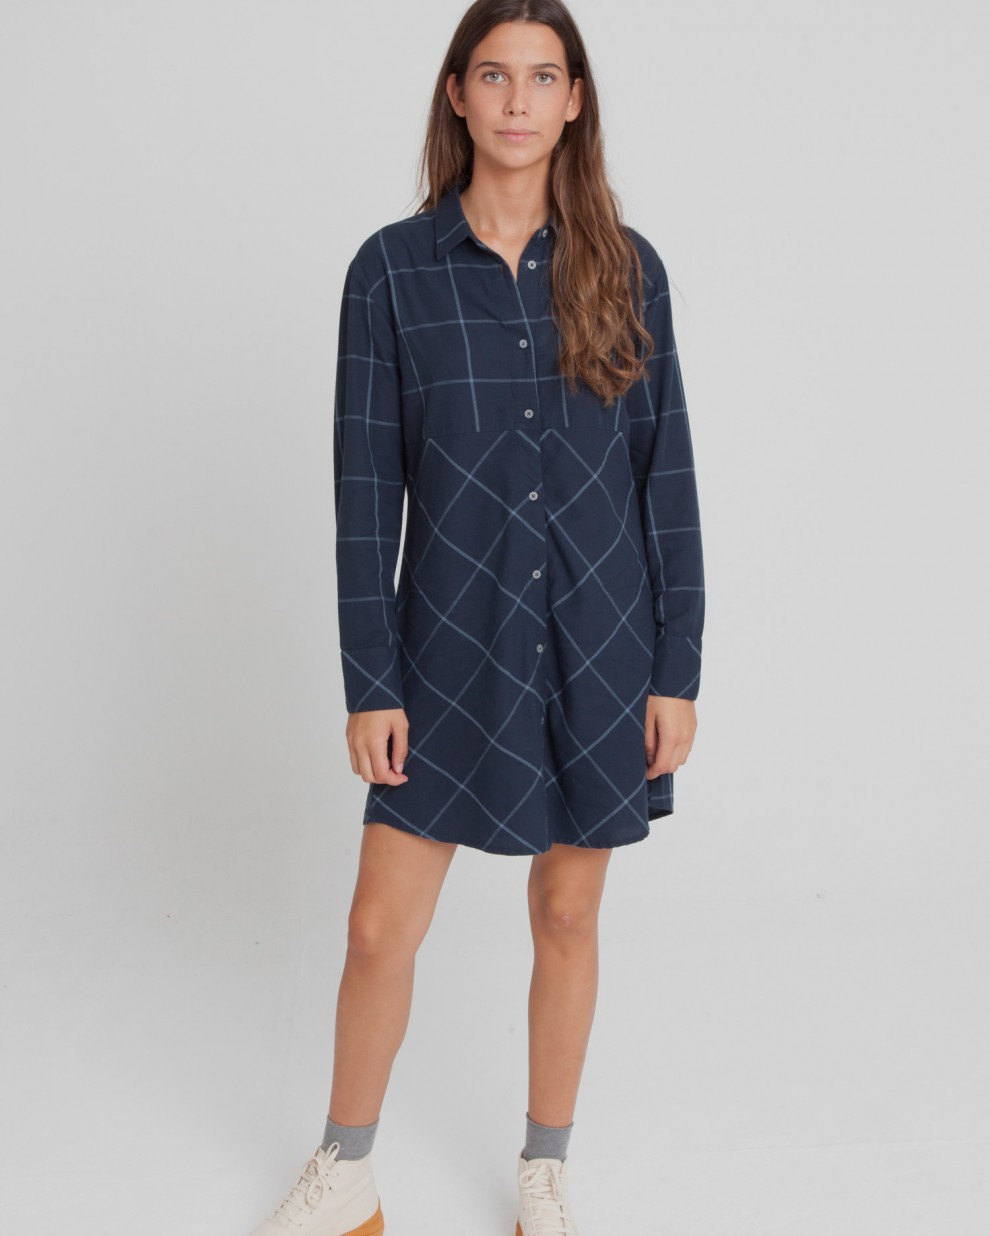 Blue Checks Amanda Dress